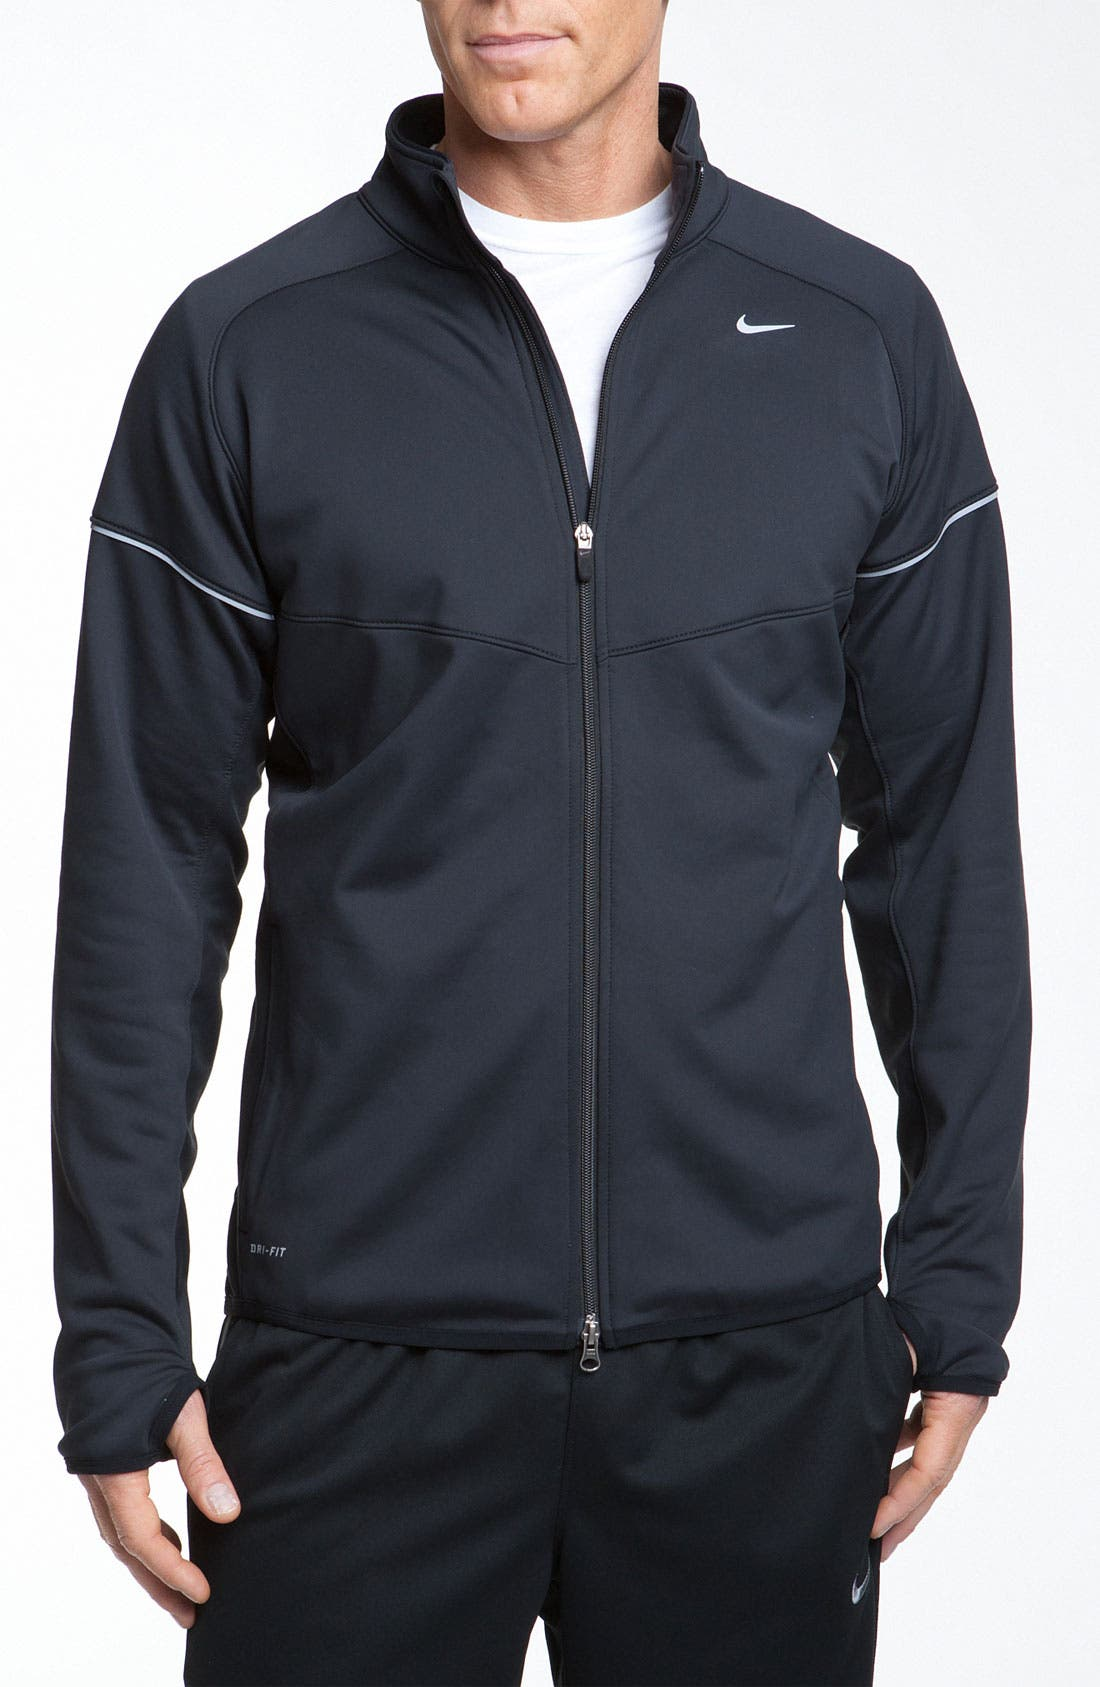 Main Image - Nike 'Element' Thermal Dri-FIT Water Resistant Running Jacket